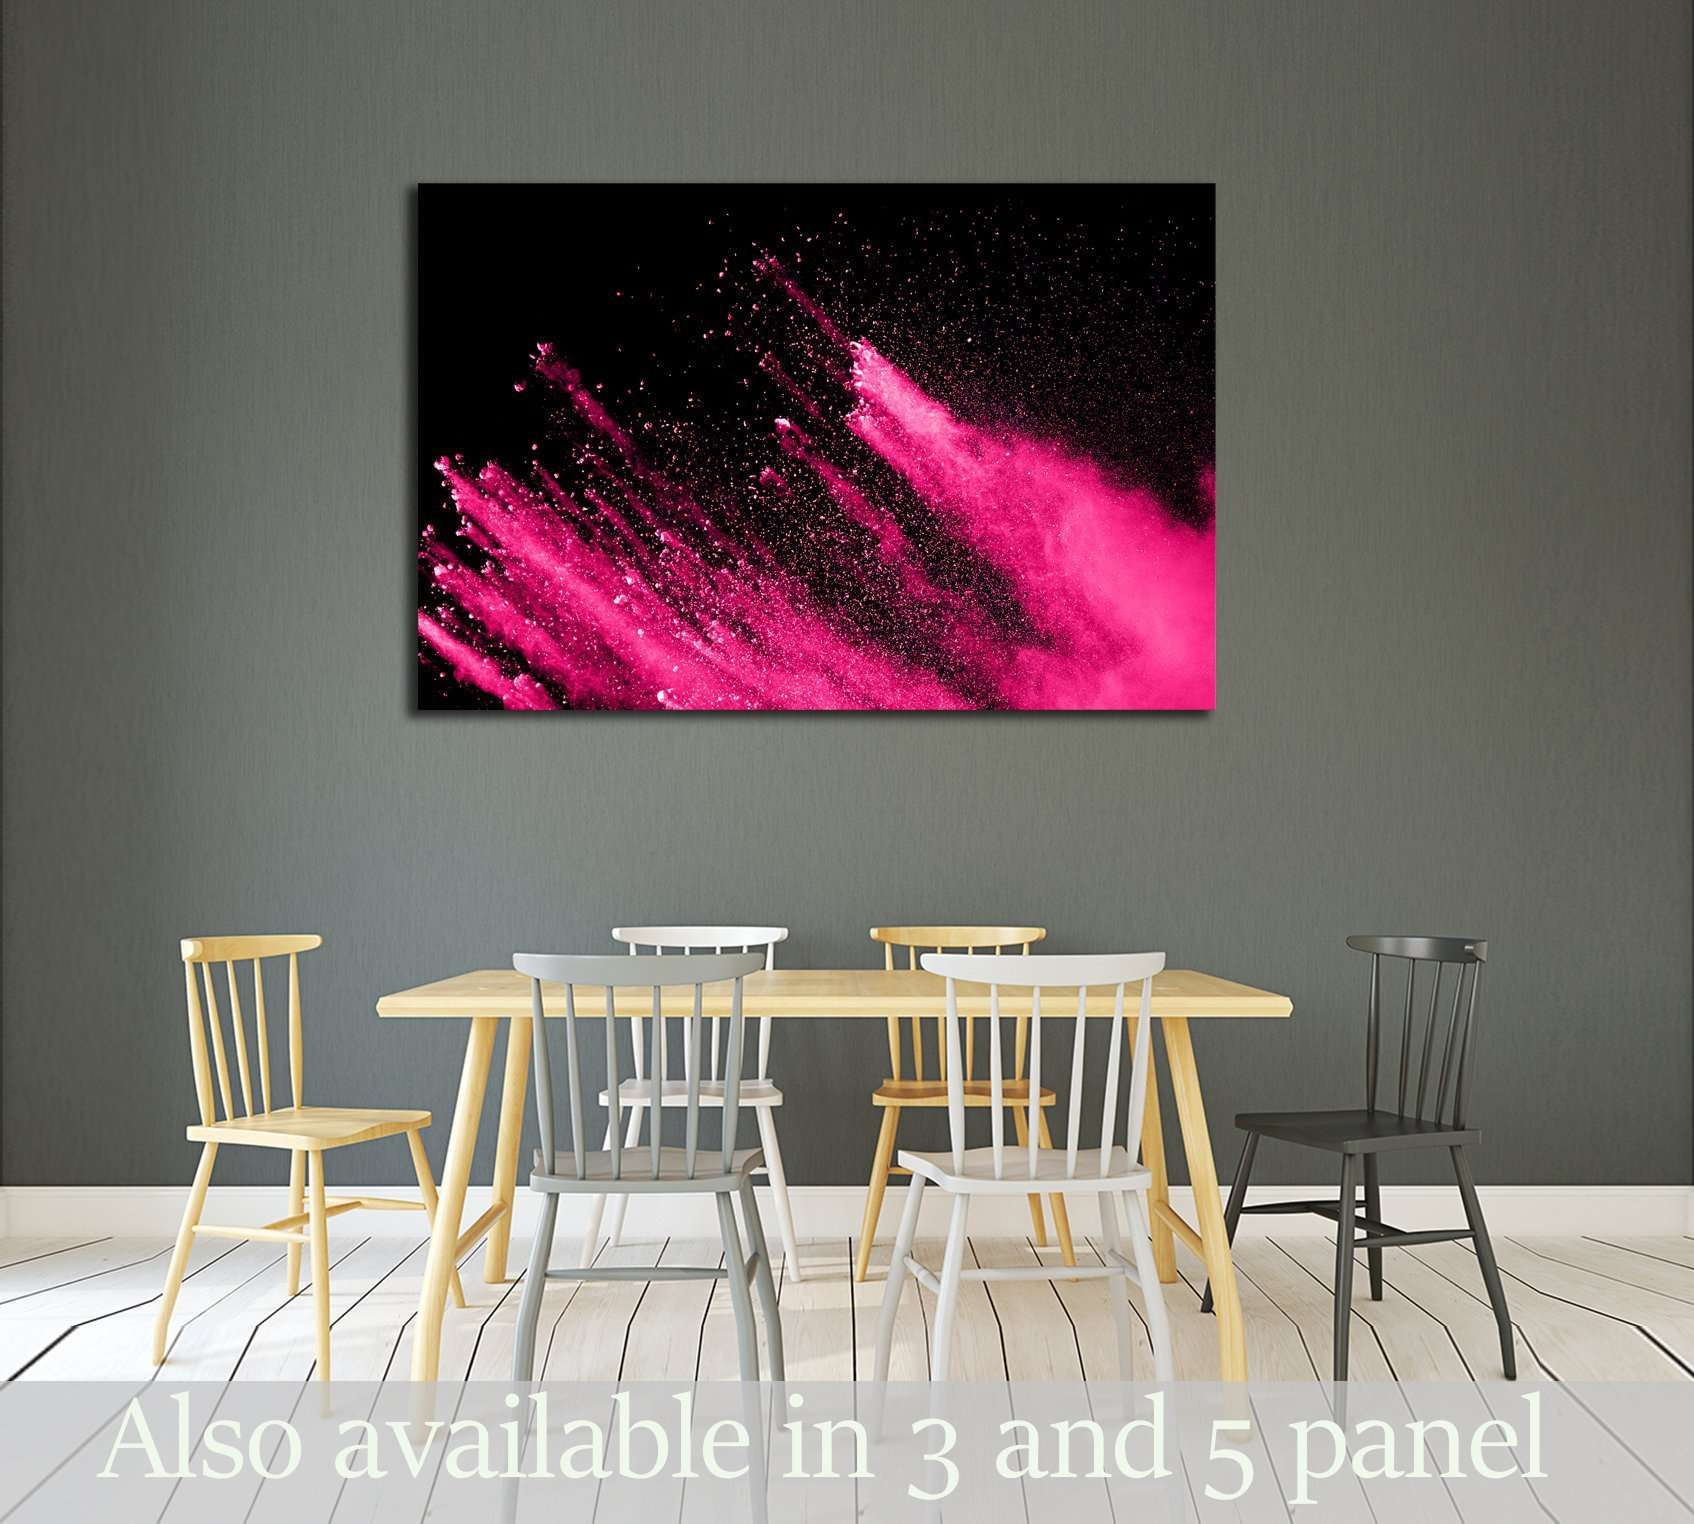 abstract powder splatted background,Freeze motion of color powder exploding №3022 Ready to Hang Canvas Print